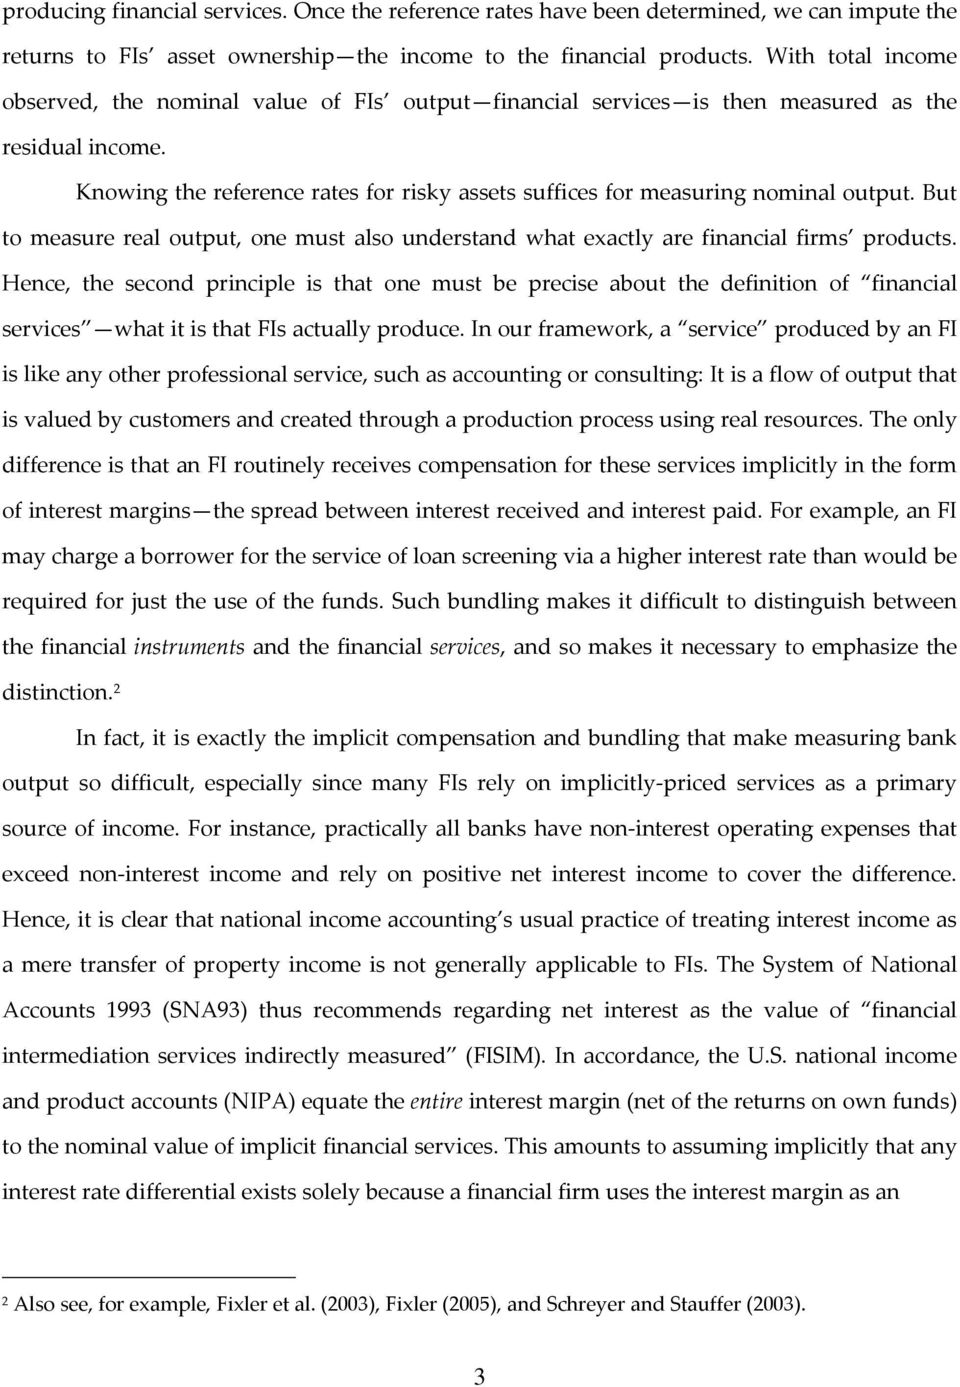 Knowing the reference rates for risky assets suffices for measuring nominal output. But to measure real output, one must also understand what exactly are financial firms products.